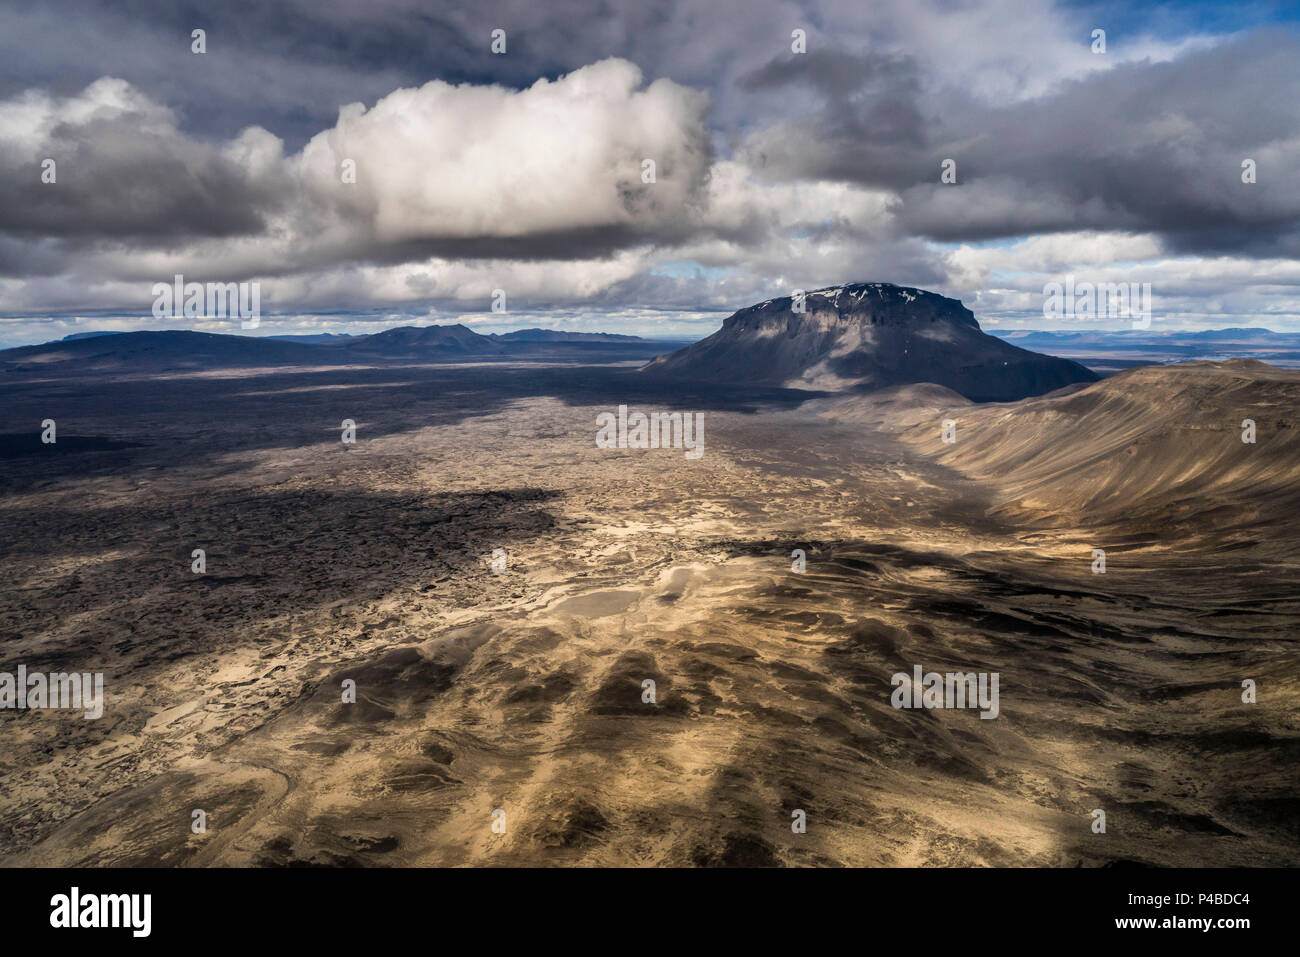 Mt. Herdubreid, Central Highlands, Iceland. Mt. Herdubreid is a high table mountain in the highlands and close to Askja volanco. It is also near the Holuhraun Lava Field. On August 29, 2014 a fissure eruption started in Holuhraun at the northern end of a magma intrusion, which had moved progressively north, from the Bardarbunga volcano. - Stock Image